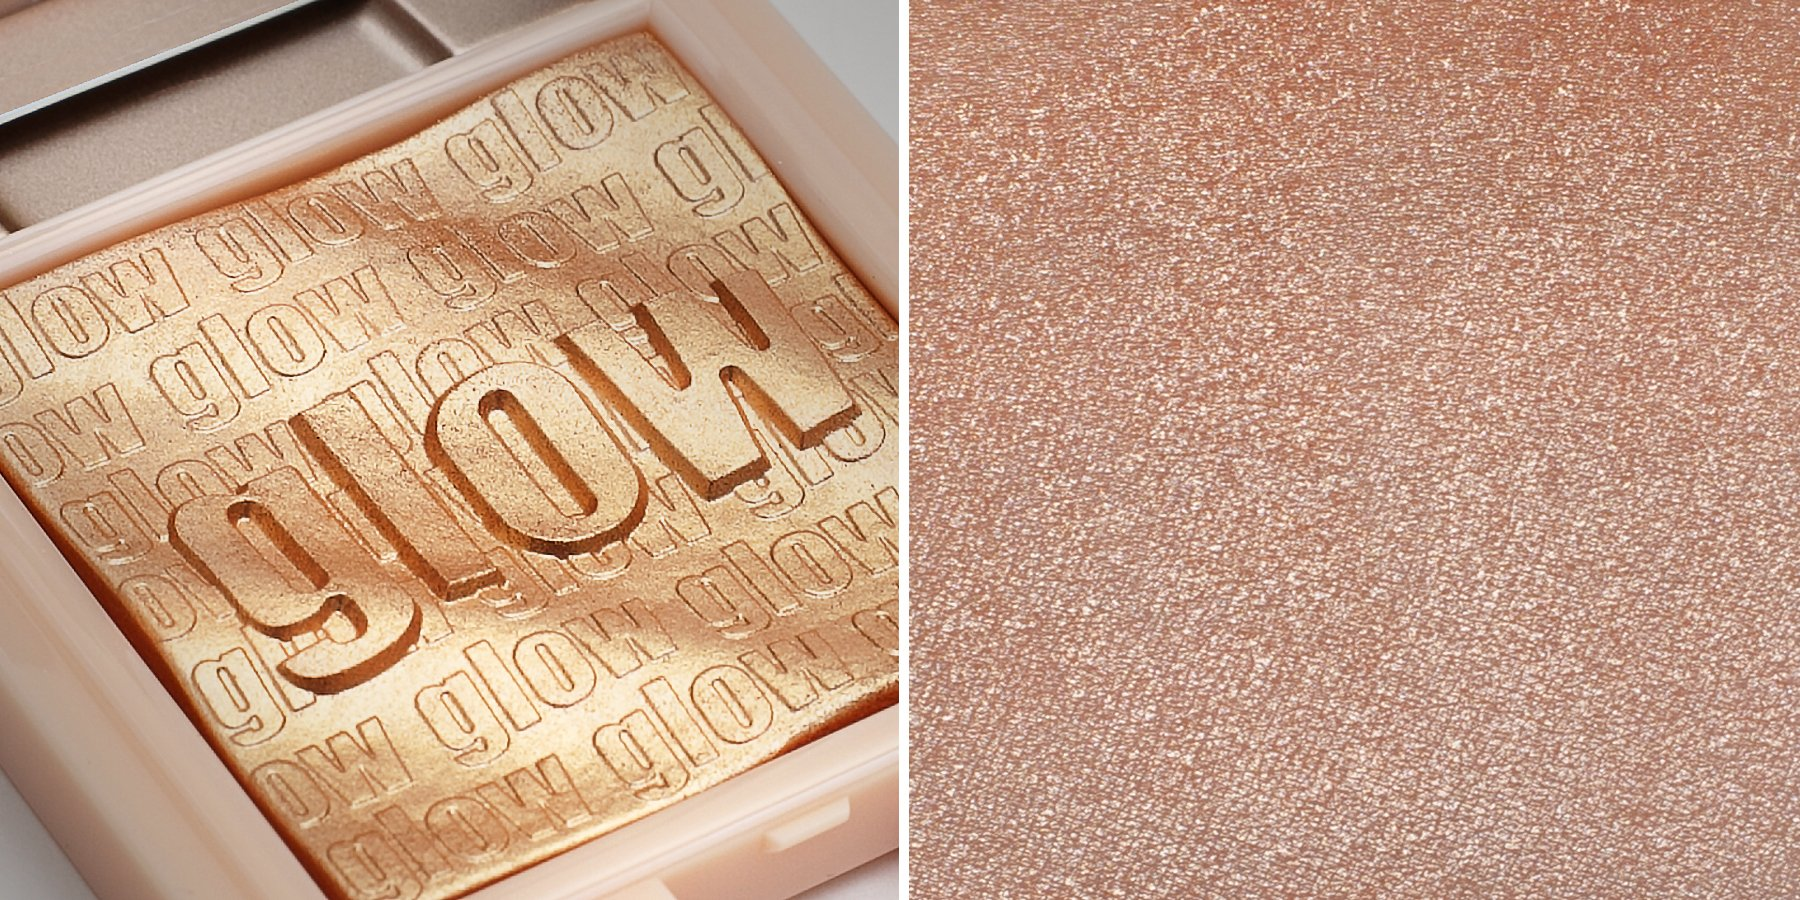 pupa glow compact highlighter 03